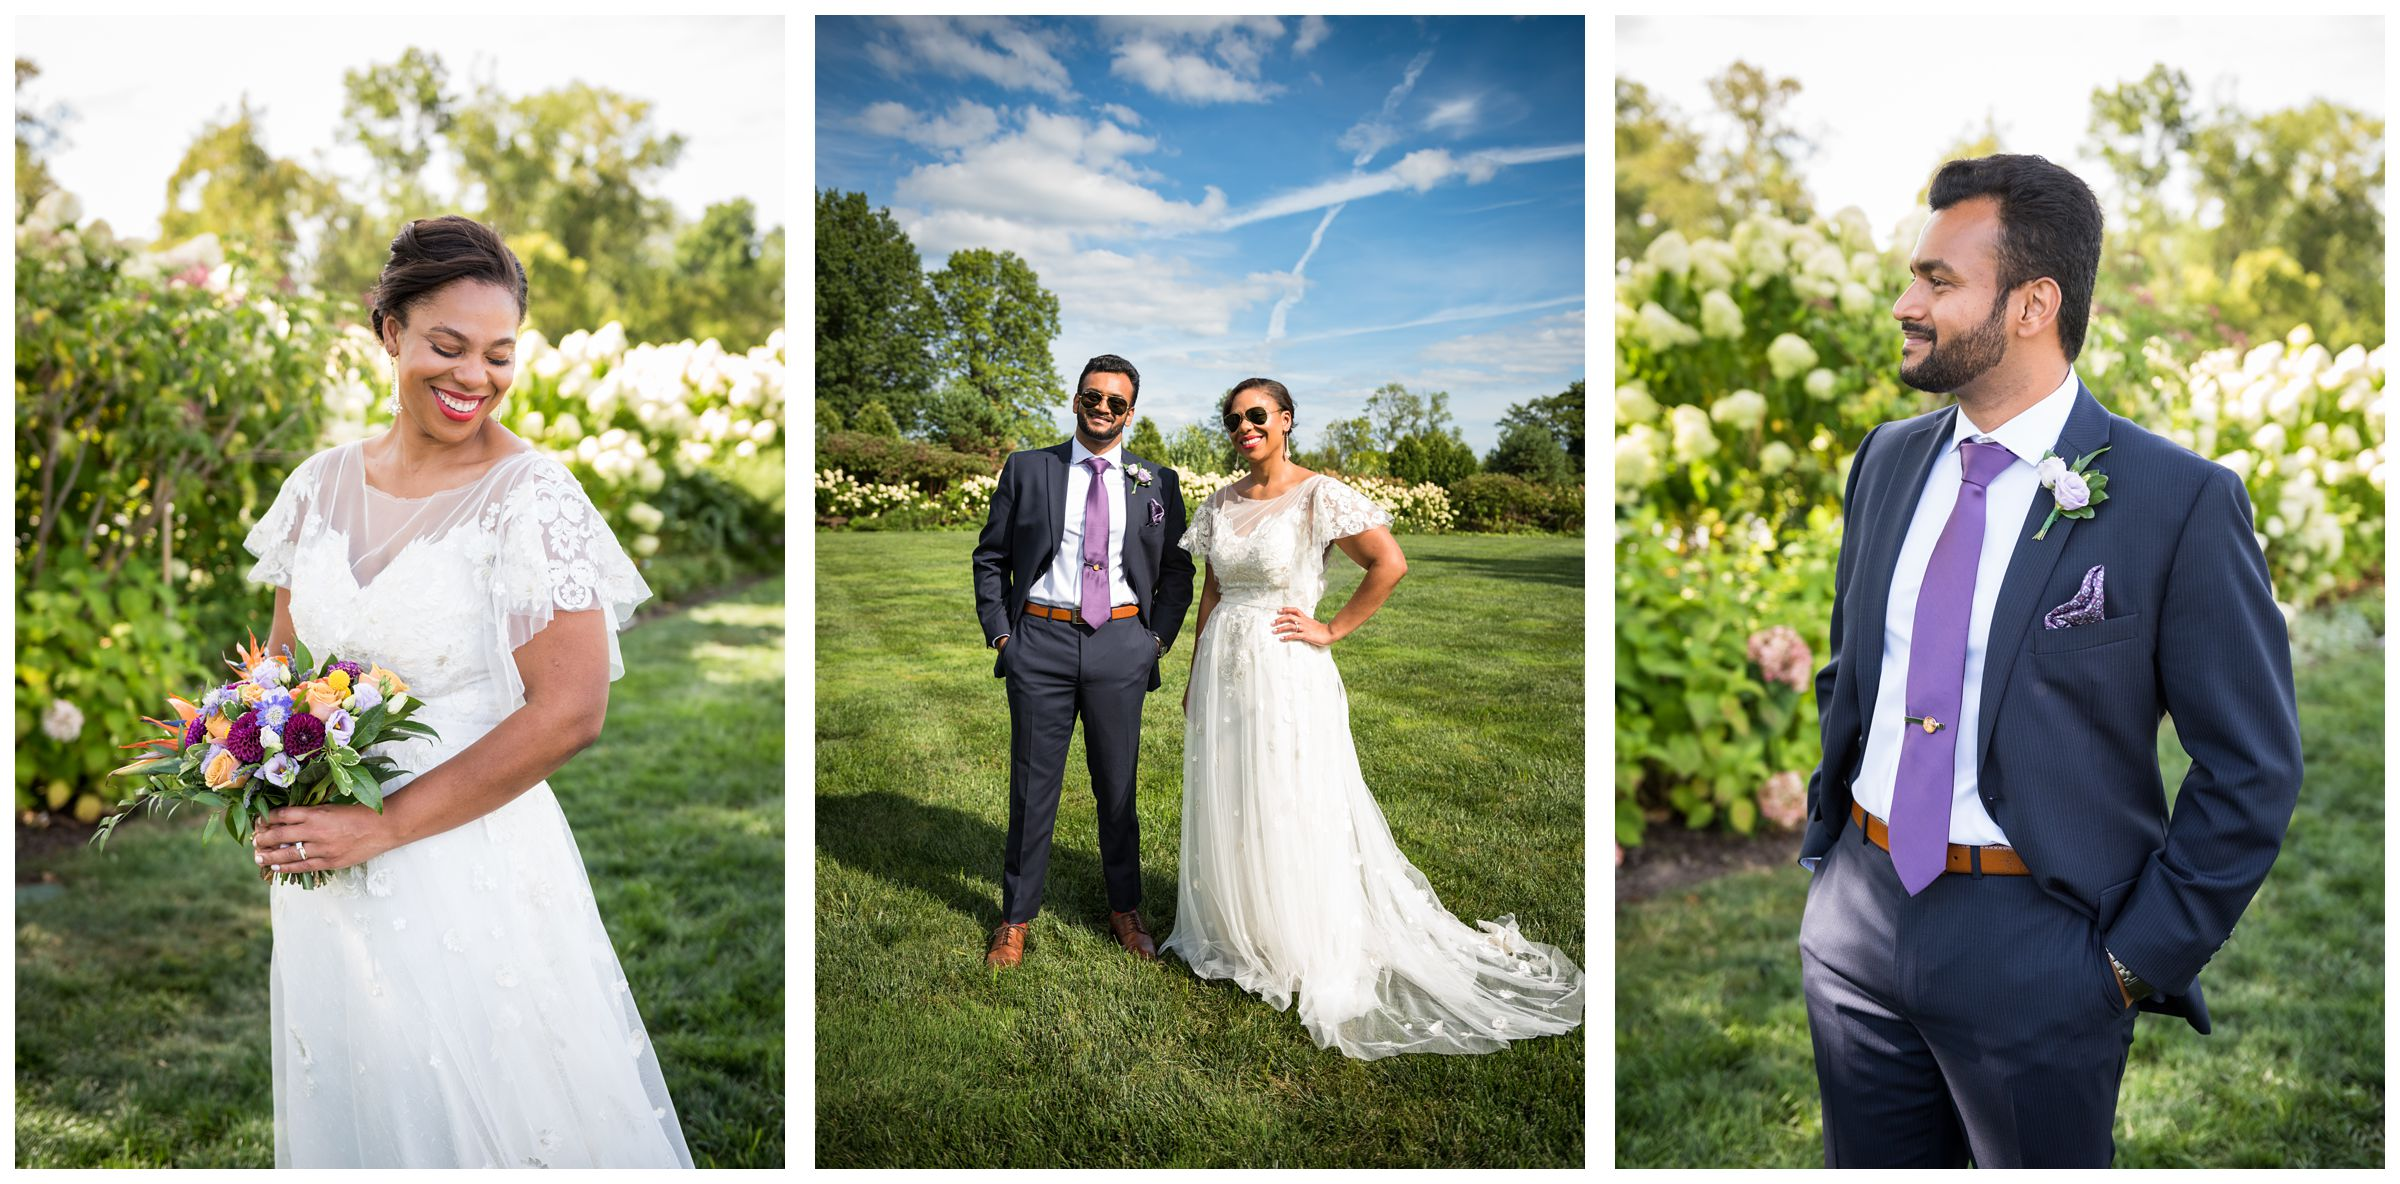 bride in lace wedding dress with flutter sleeves and groom in navy suit with purple tie wearing sunglasses during summer wedding